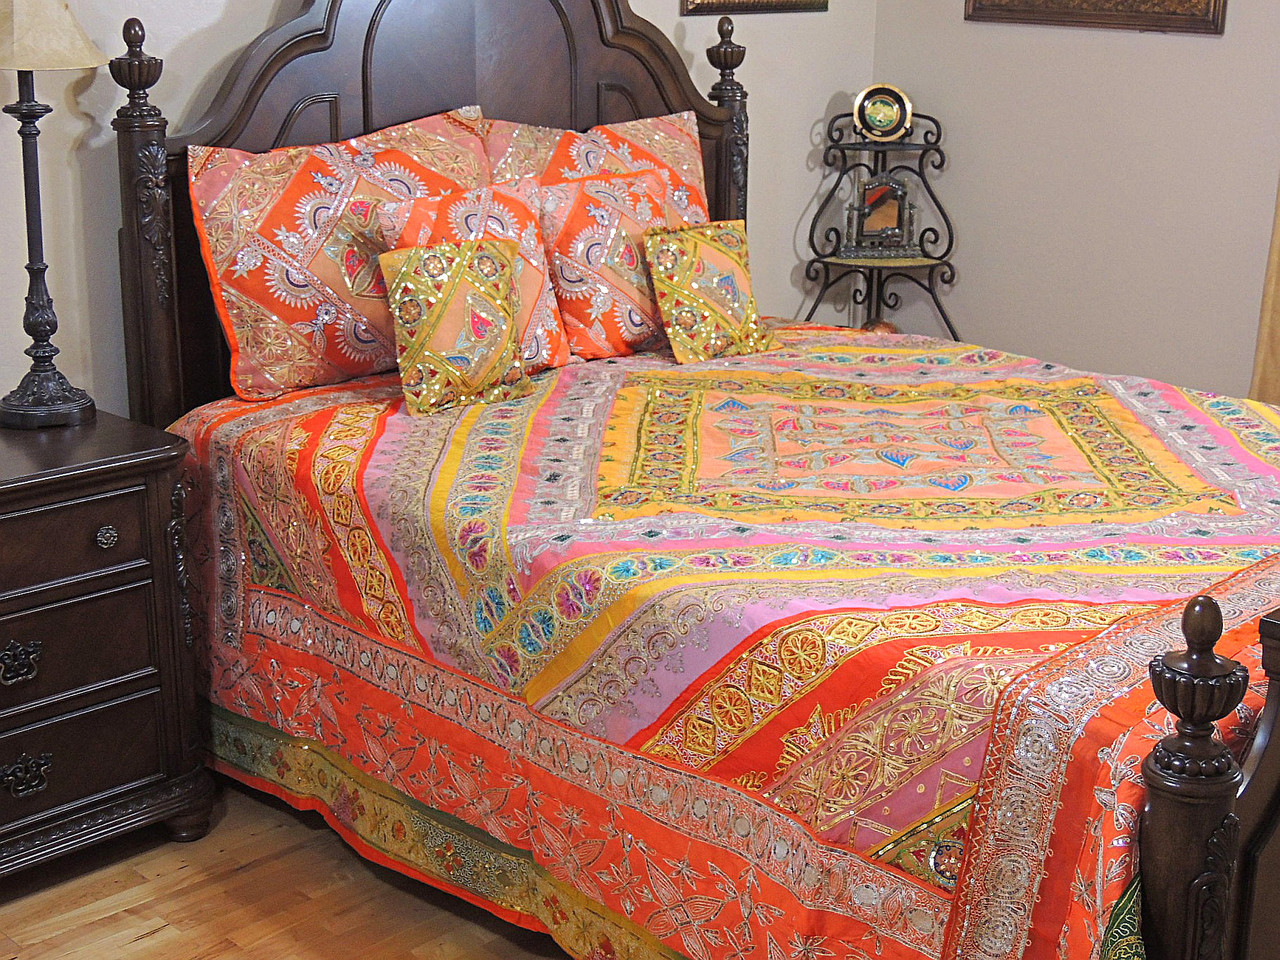 quilt keep place com concealed studs and dvala x cover orange duvet press the pillowcases agrimarques ikea in